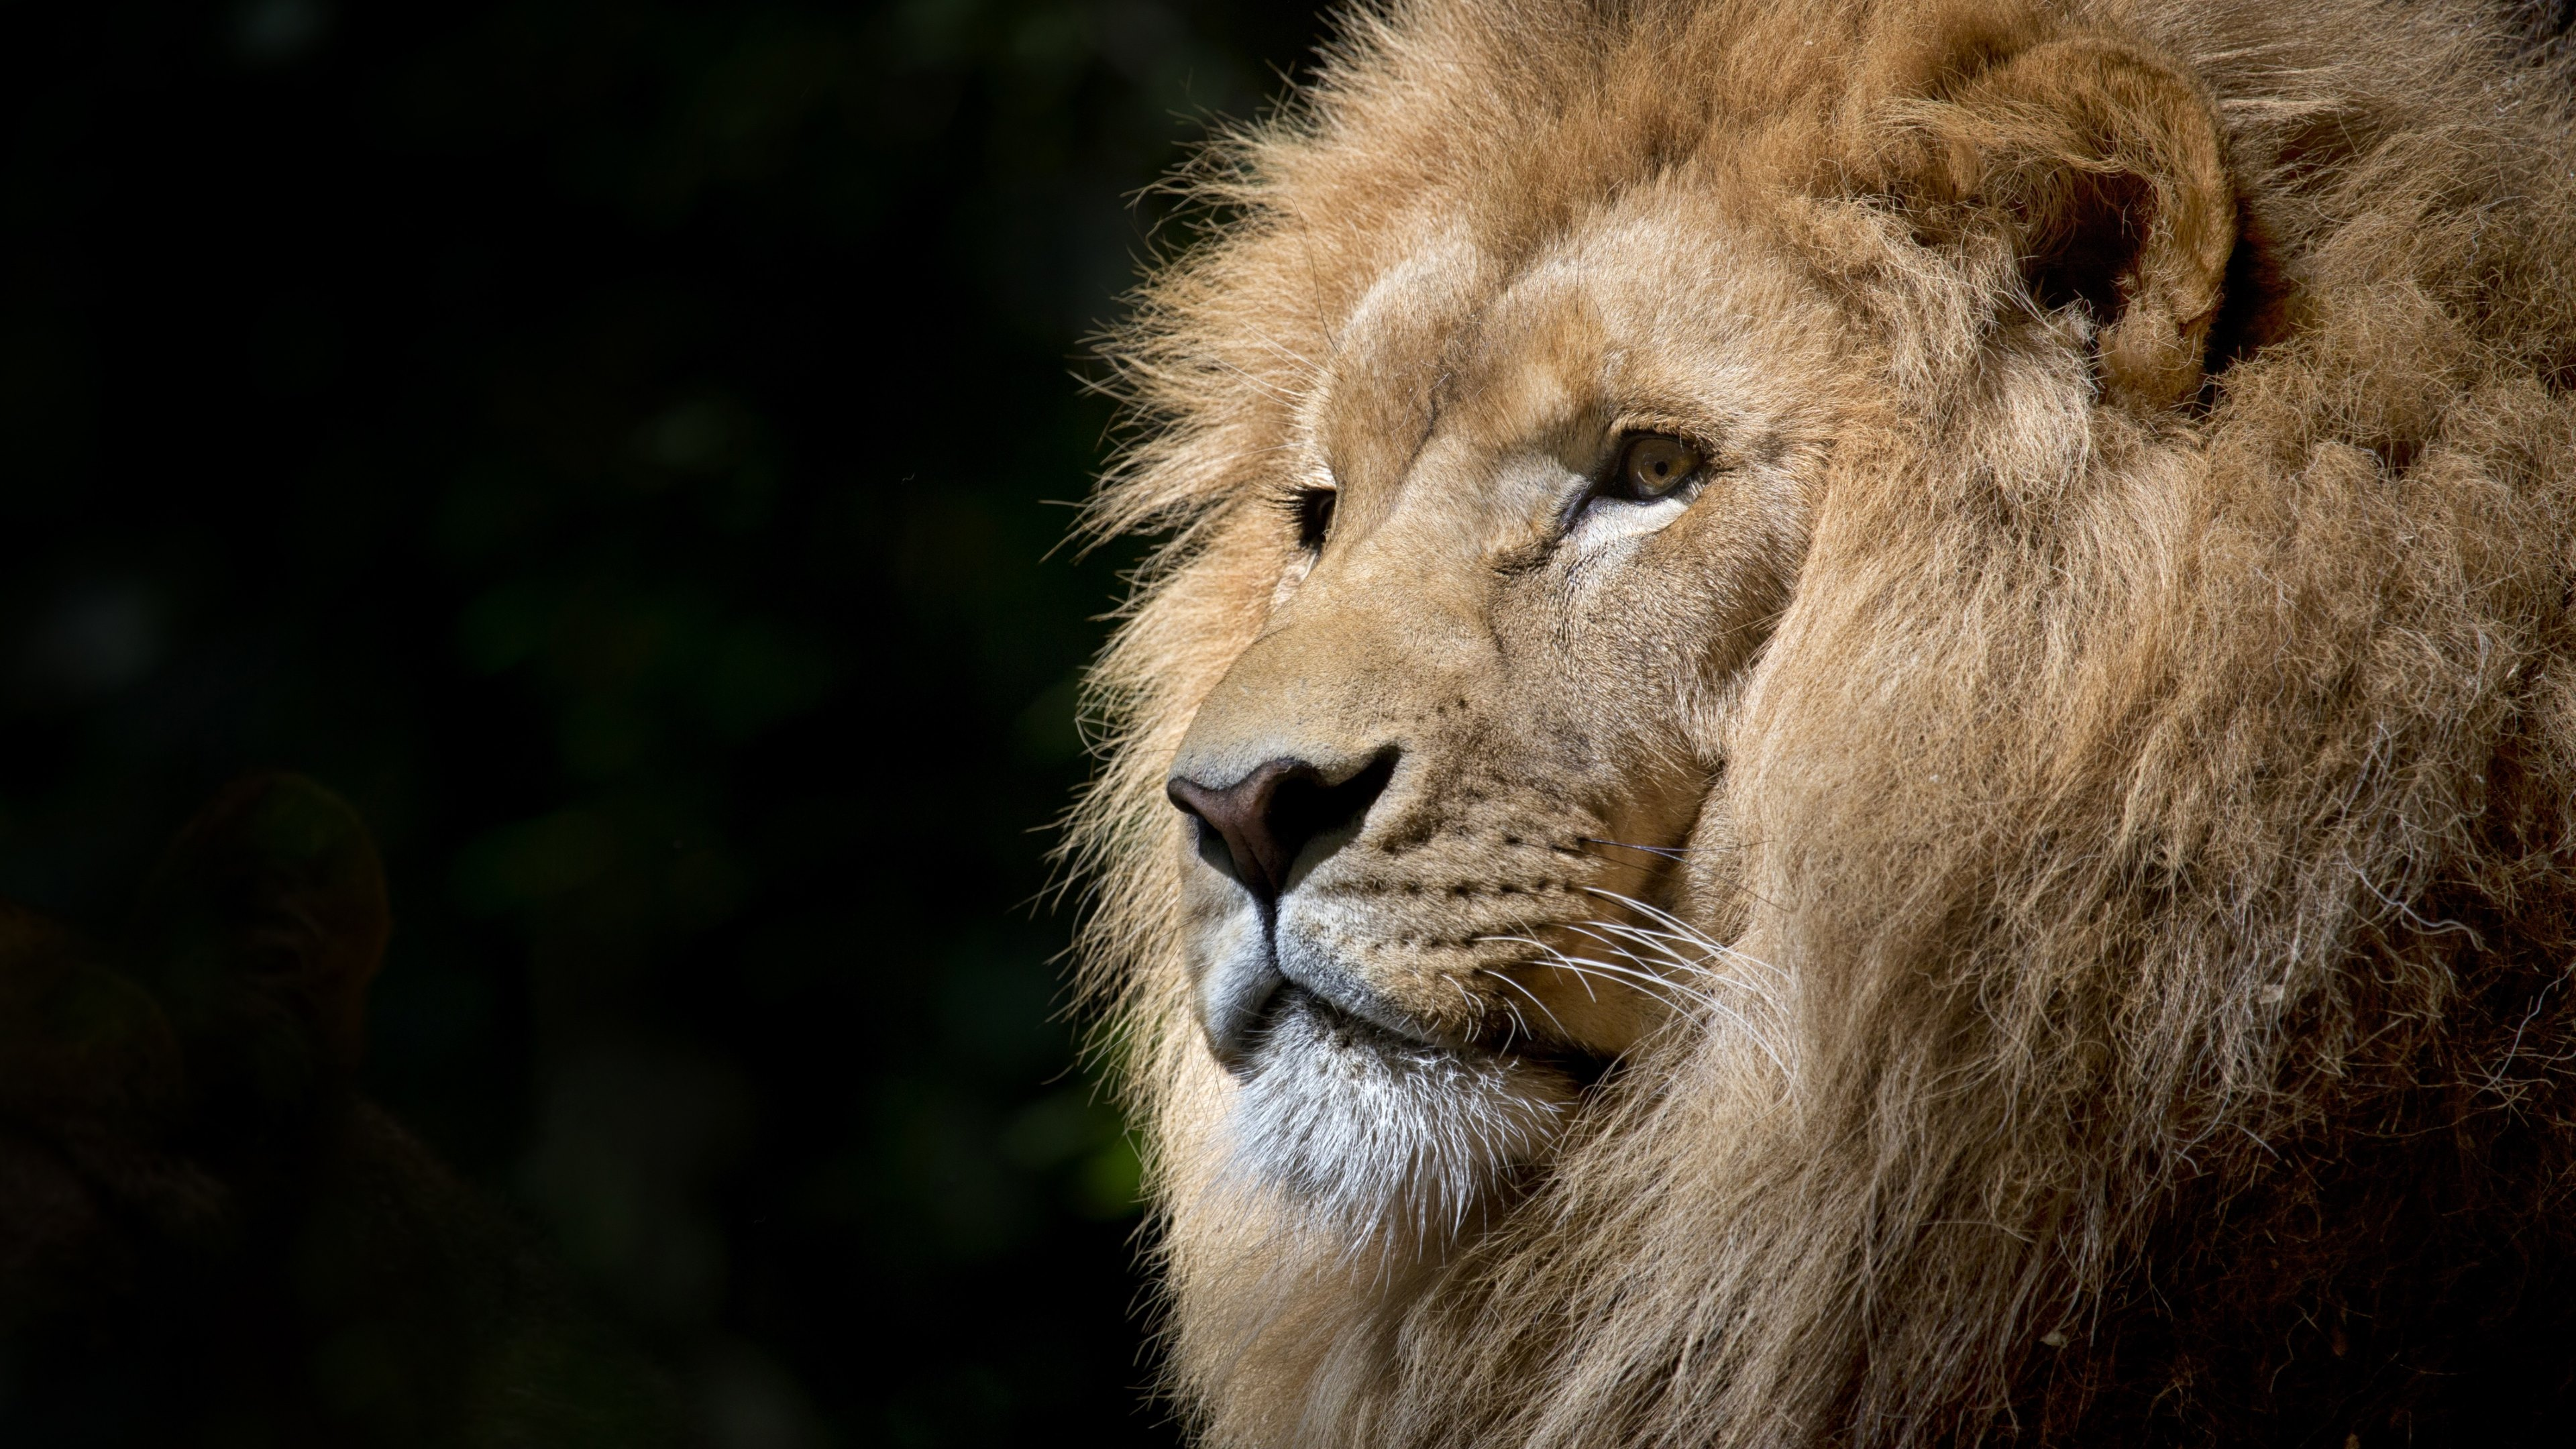 The king, lion, king of the jungle, male lion, male lion, mane, king